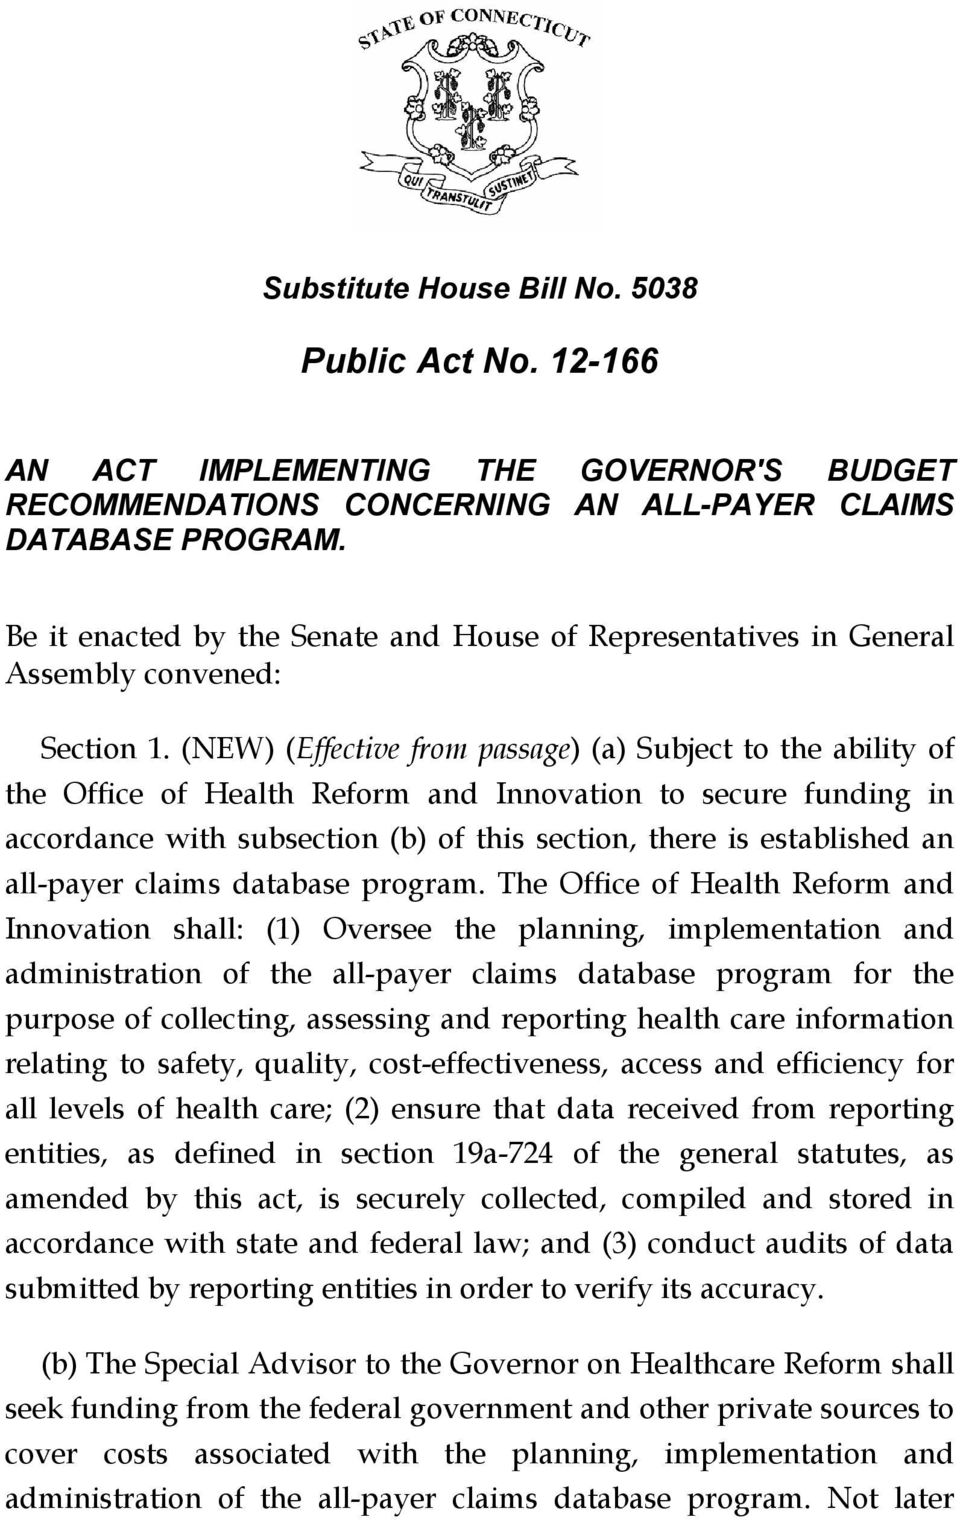 (NEW) (Effective from passage) (a) Subject to the ability of the Office of Health Reform and Innovation to secure funding in accordance with subsection (b) of this section, there is established an